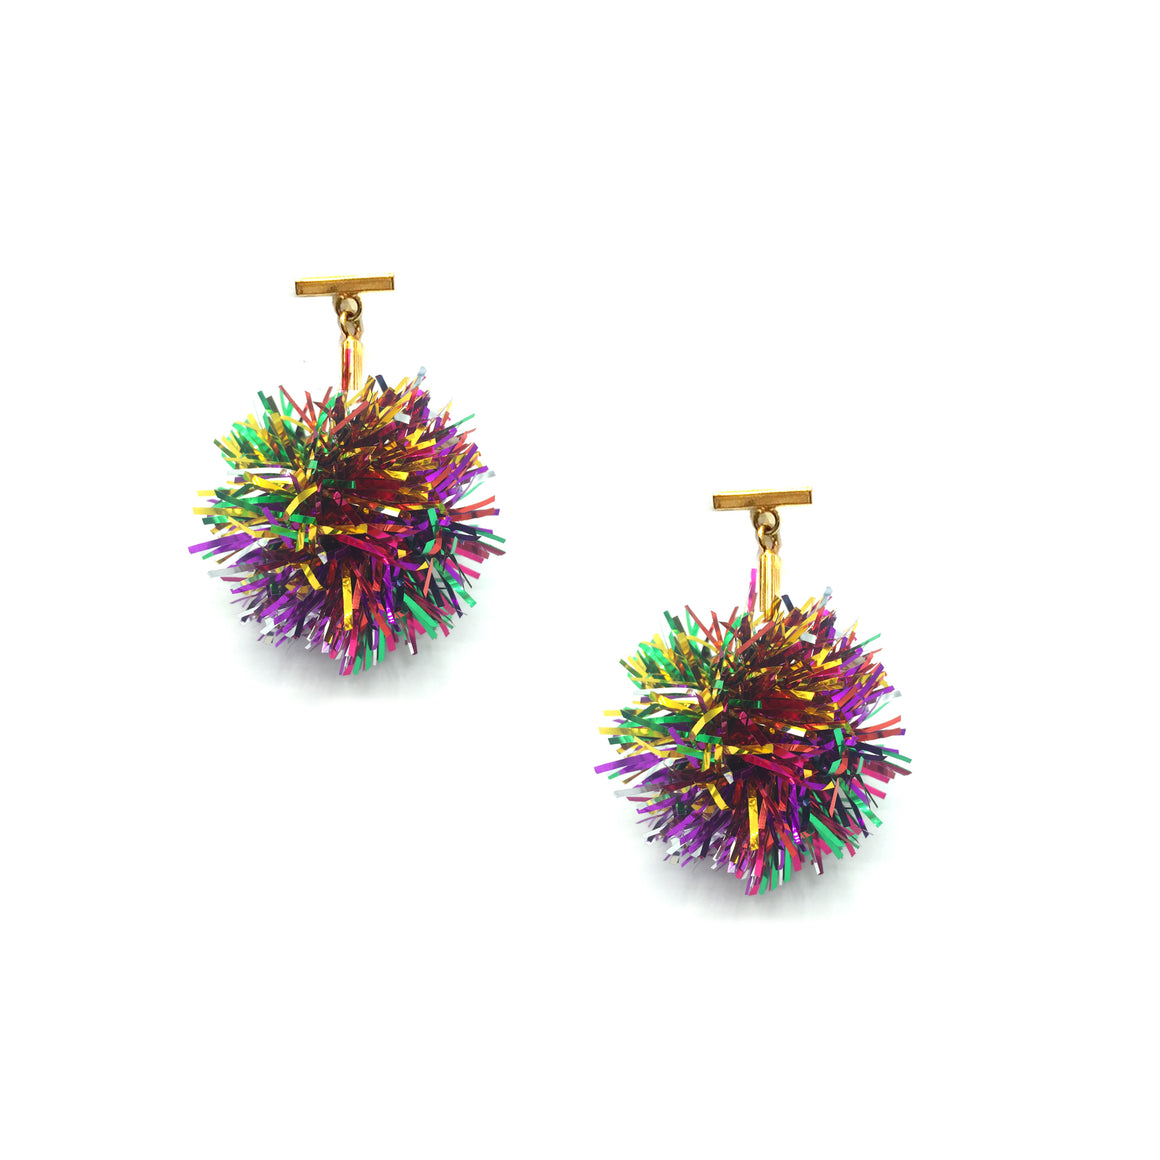 "1"" Rainbow Lurex Pom Pom T Stud Earrings, Earrings, Tuleste, Tuleste"